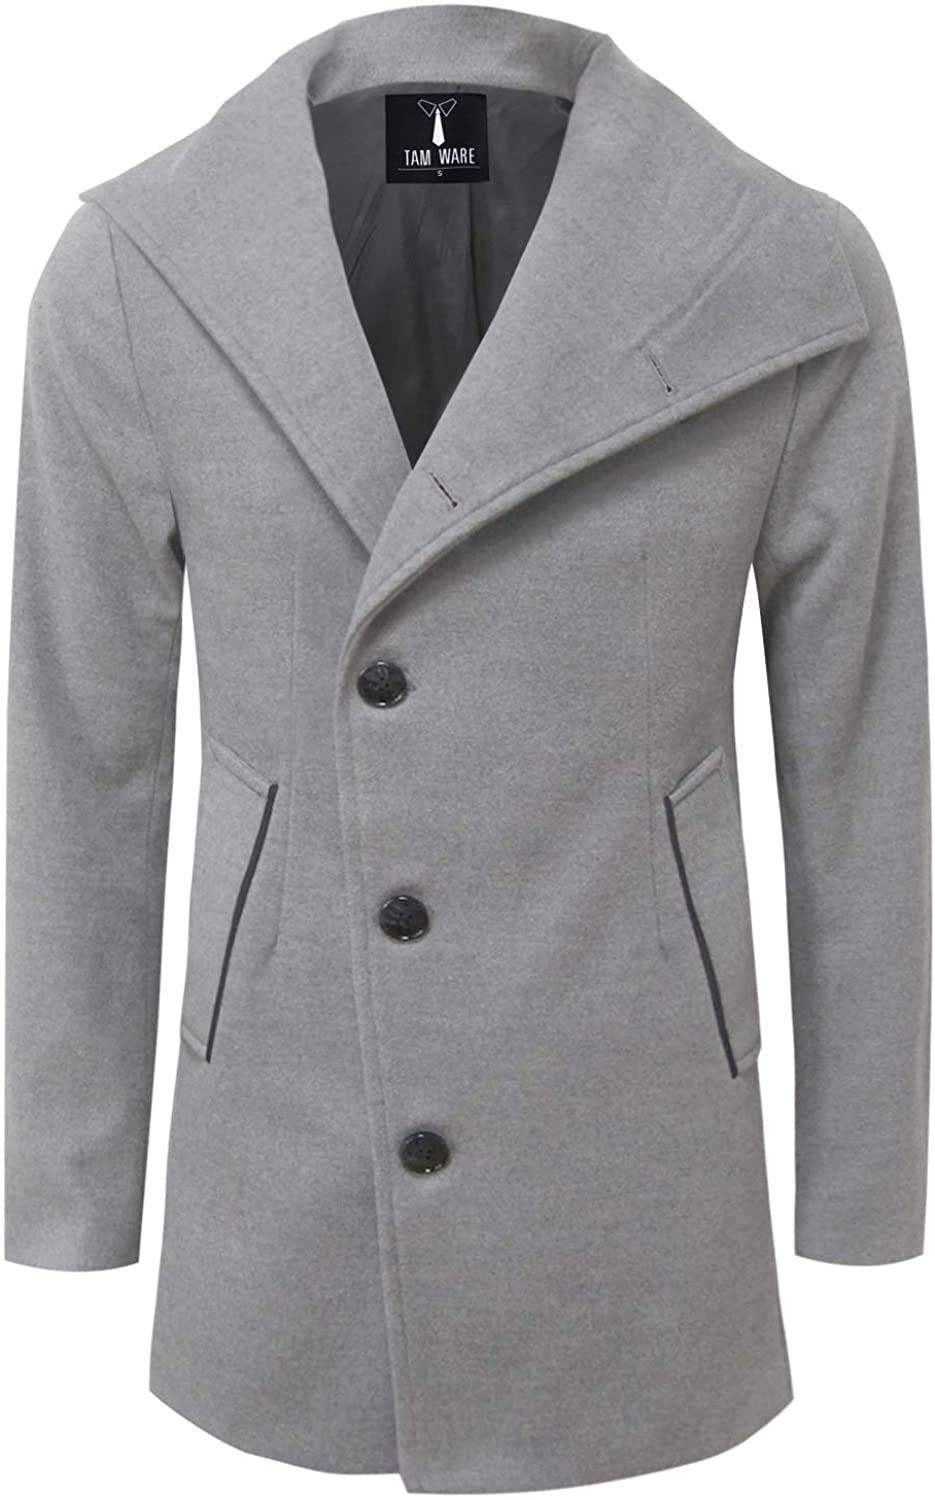 TAM WARE Mens Single Breasted Button Wool Pea Coat